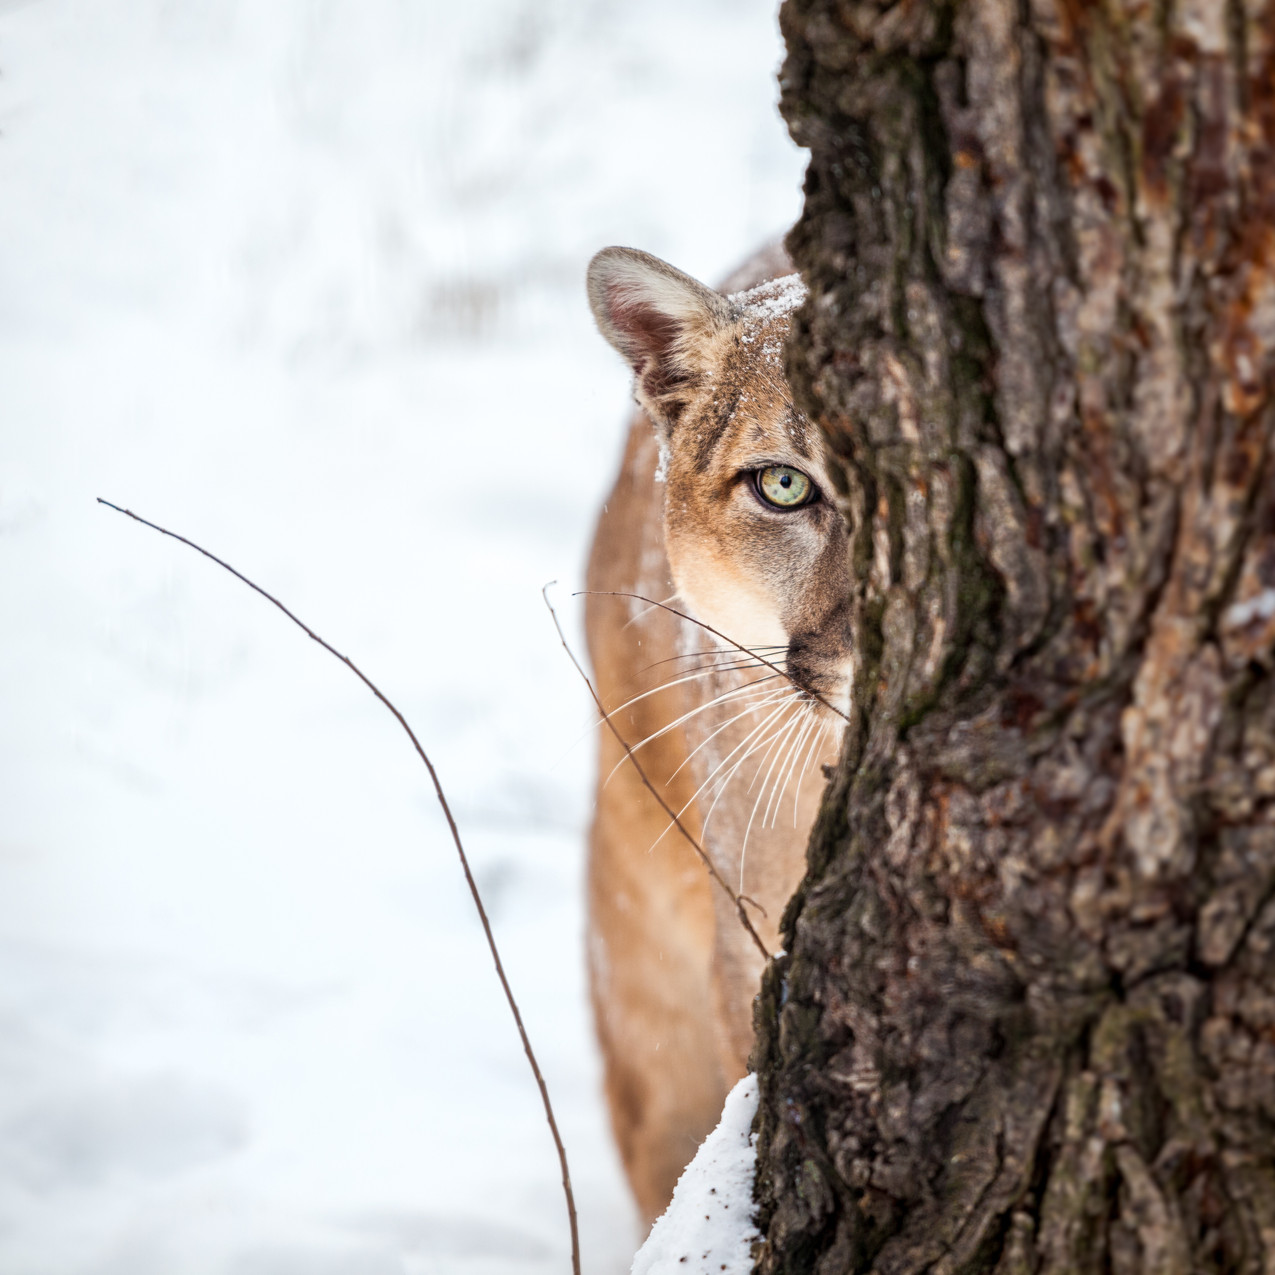 Portrait of a cougar, mountain lion, puma, striking pose, Winter scene in the woods